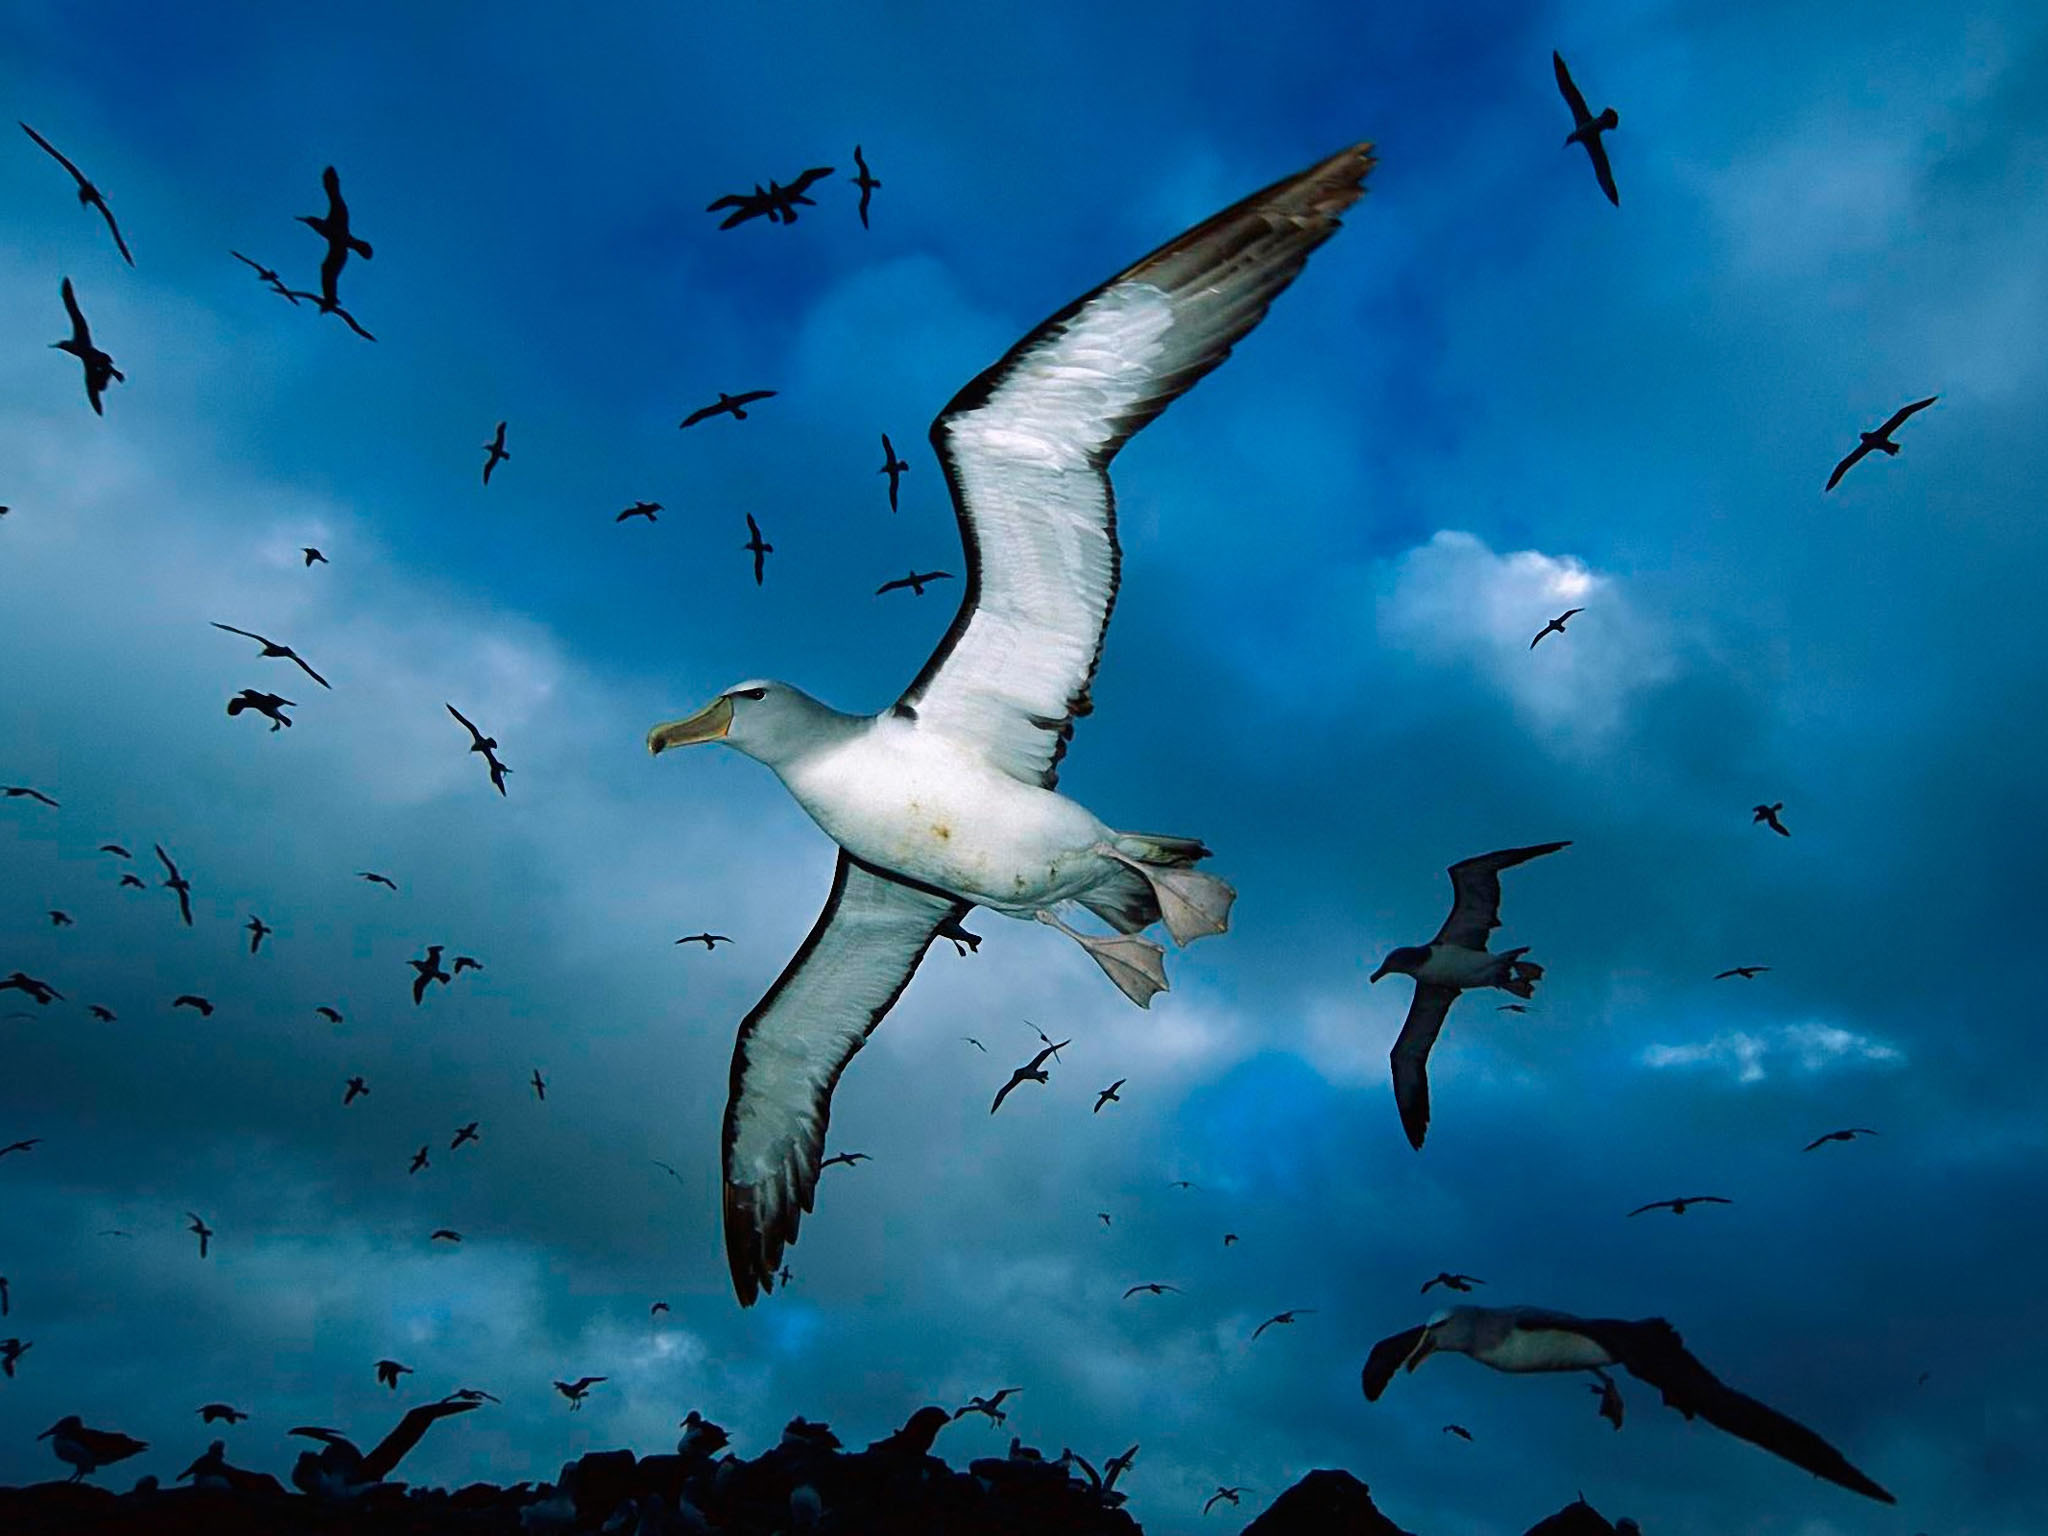 Flying Birds Apple Animals Blue Sky Wallpaper Hd Desktop 2048x1536